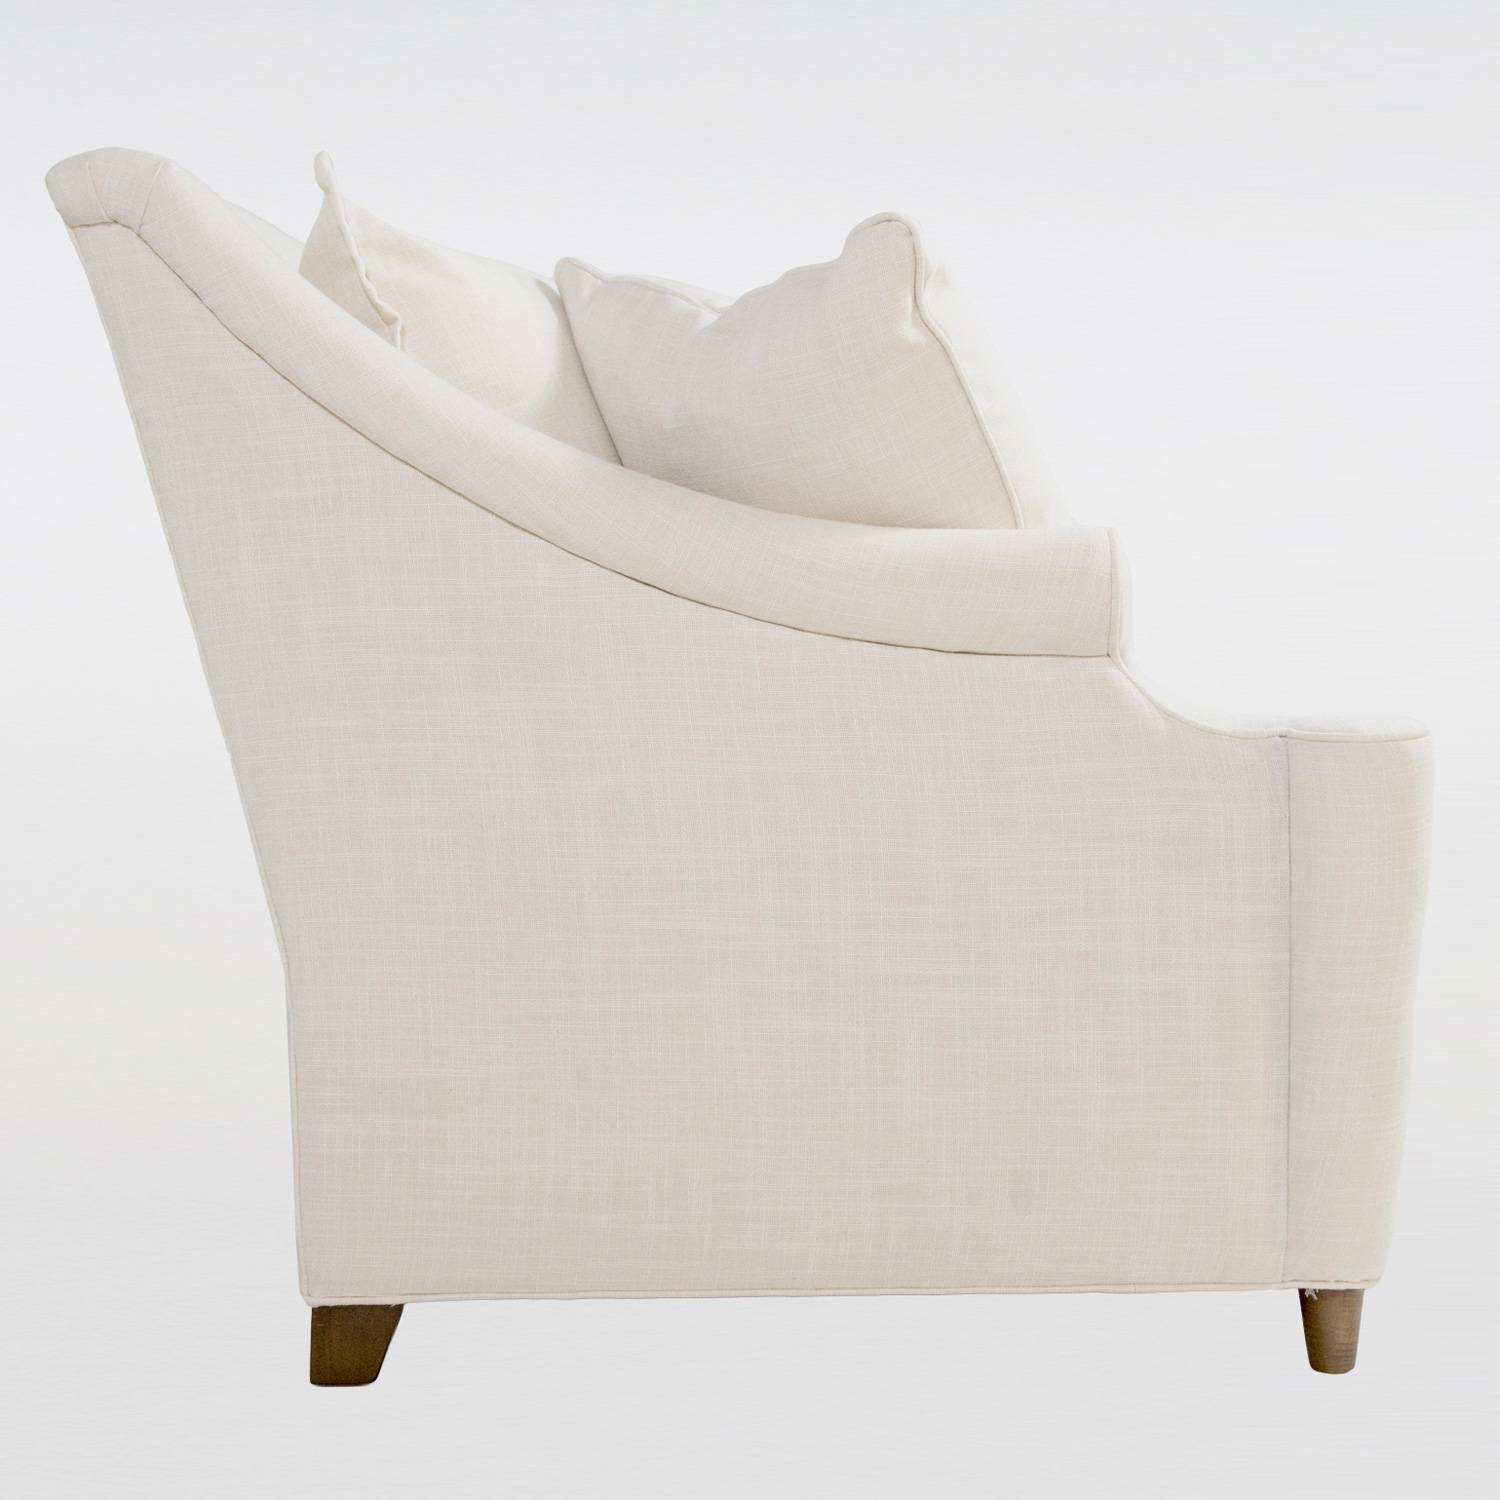 Gabby Furniture Theo Bench Cushion Sofa for Bench Cushion Sofas (Image 4 of 15)